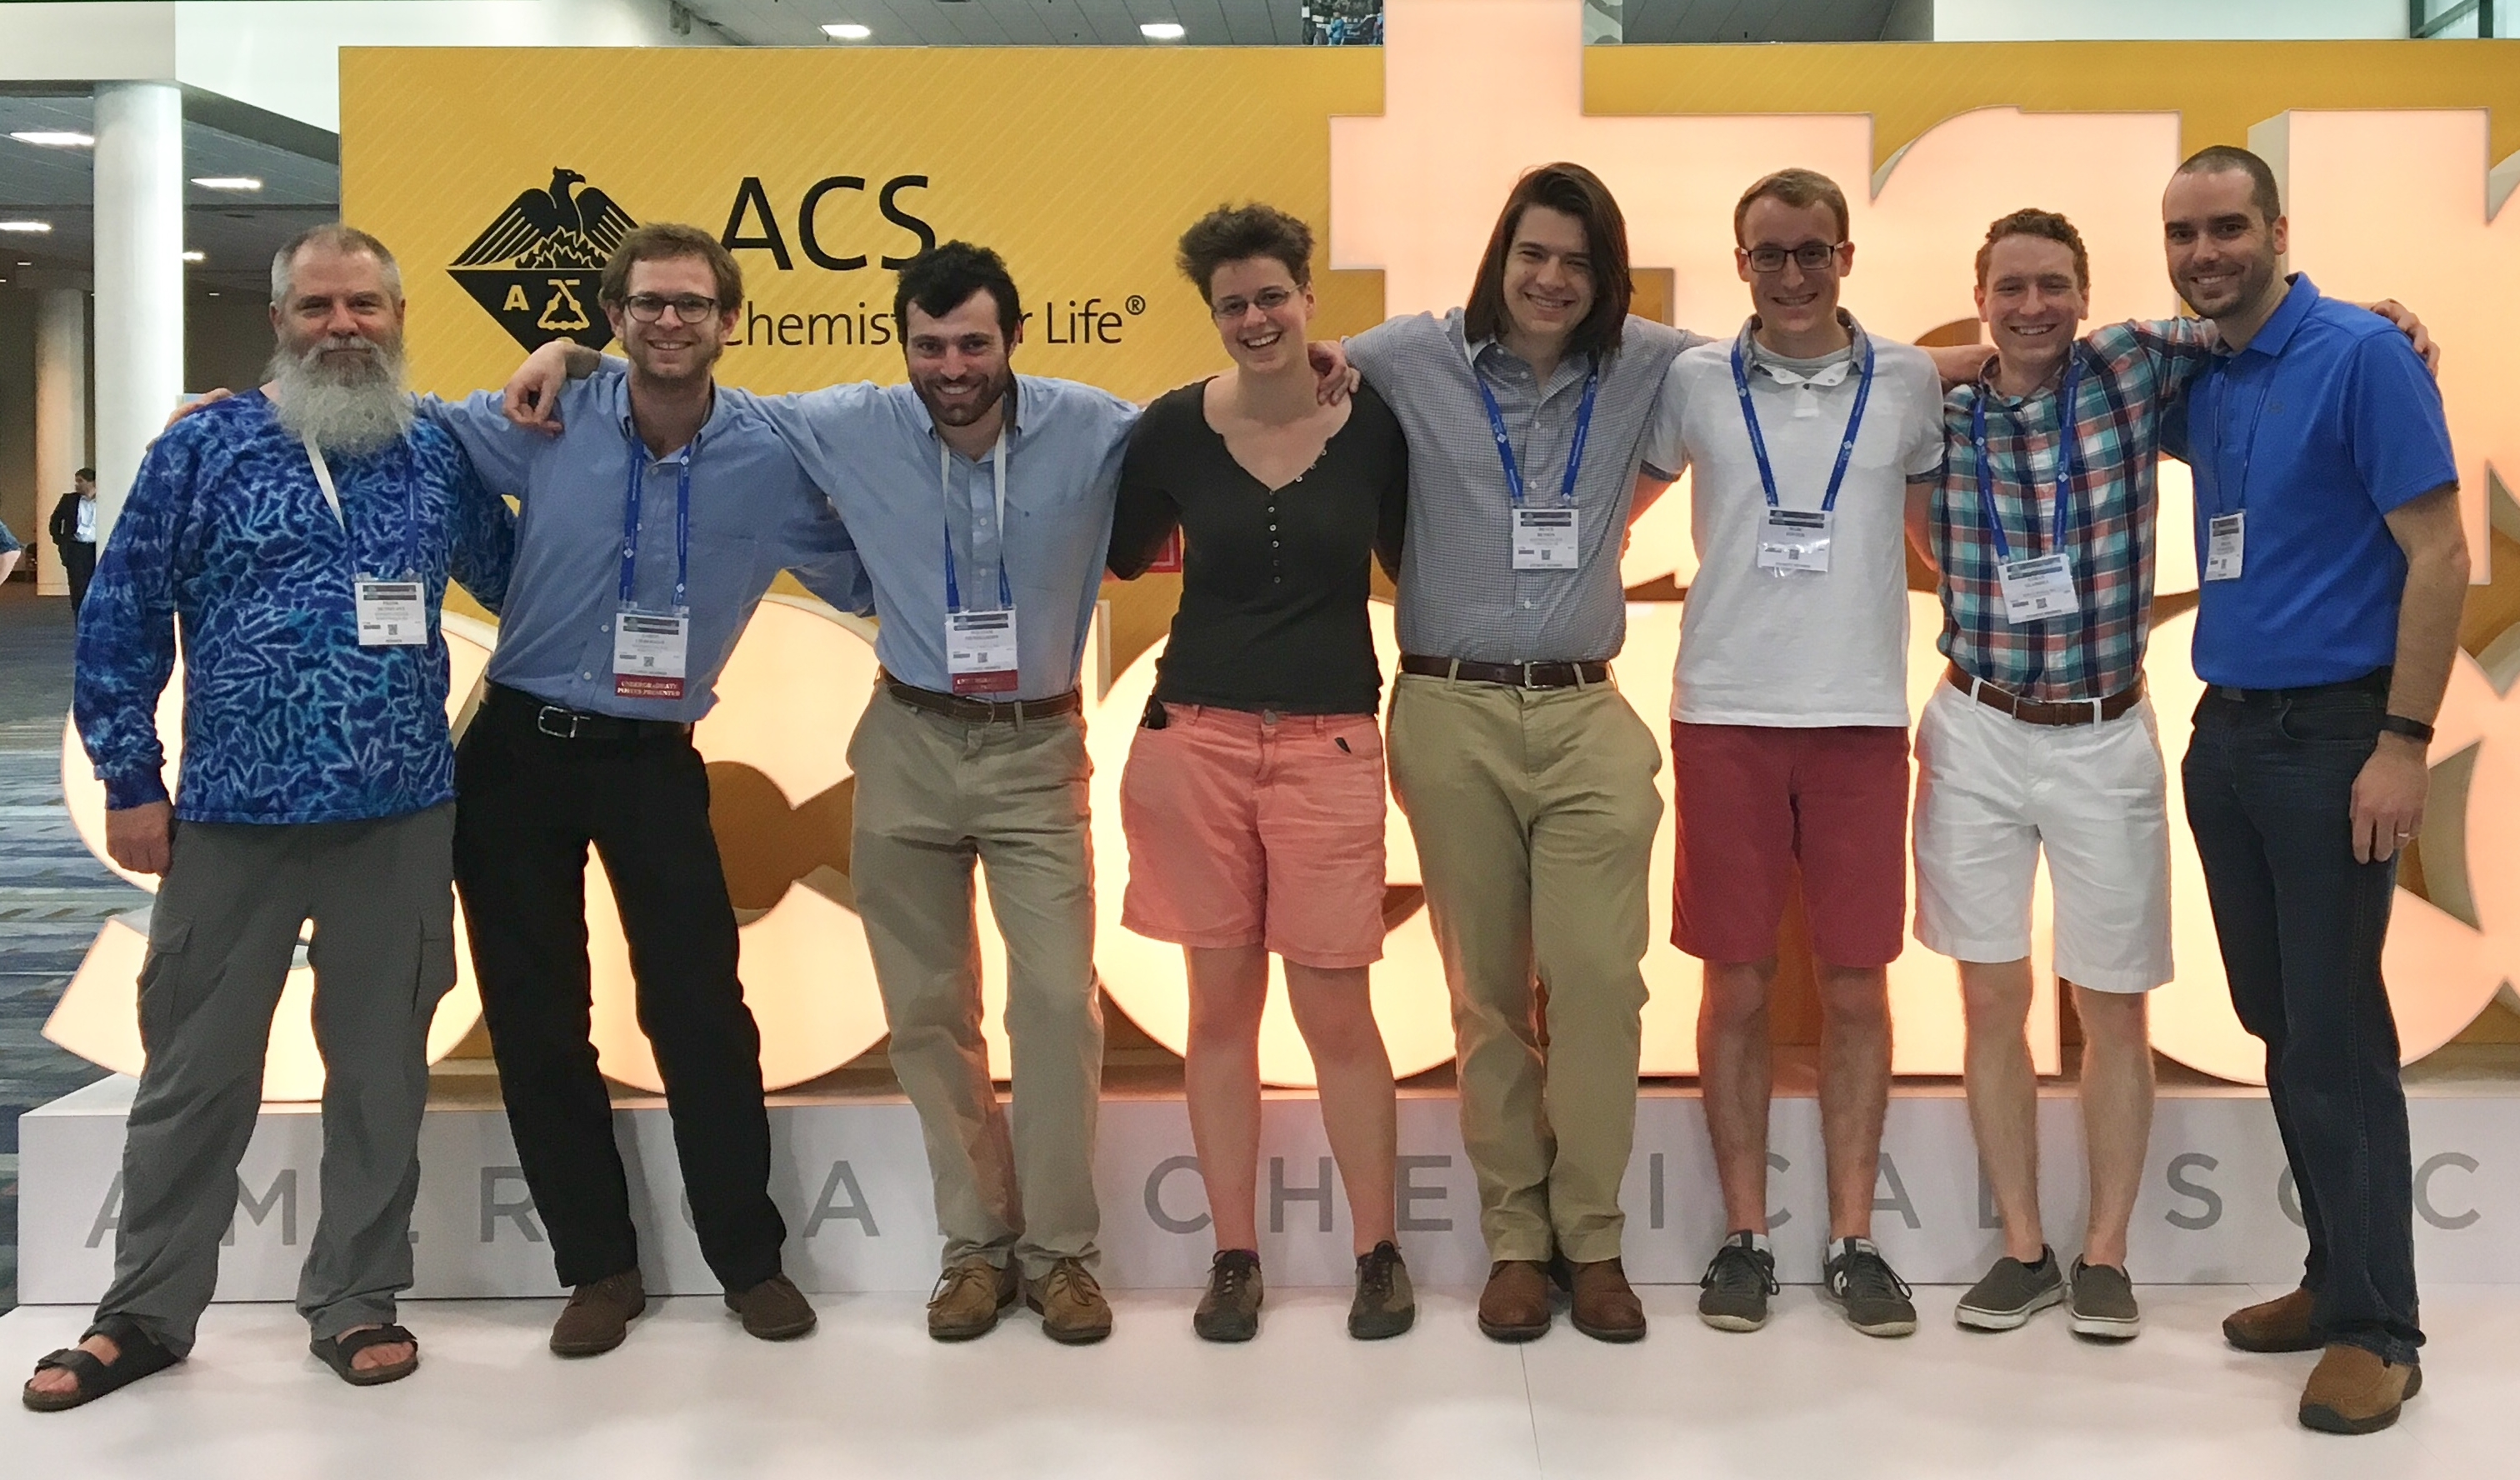 Whitman Chemistry students and faculty at the 2018 ACS Meeting in New Orleans